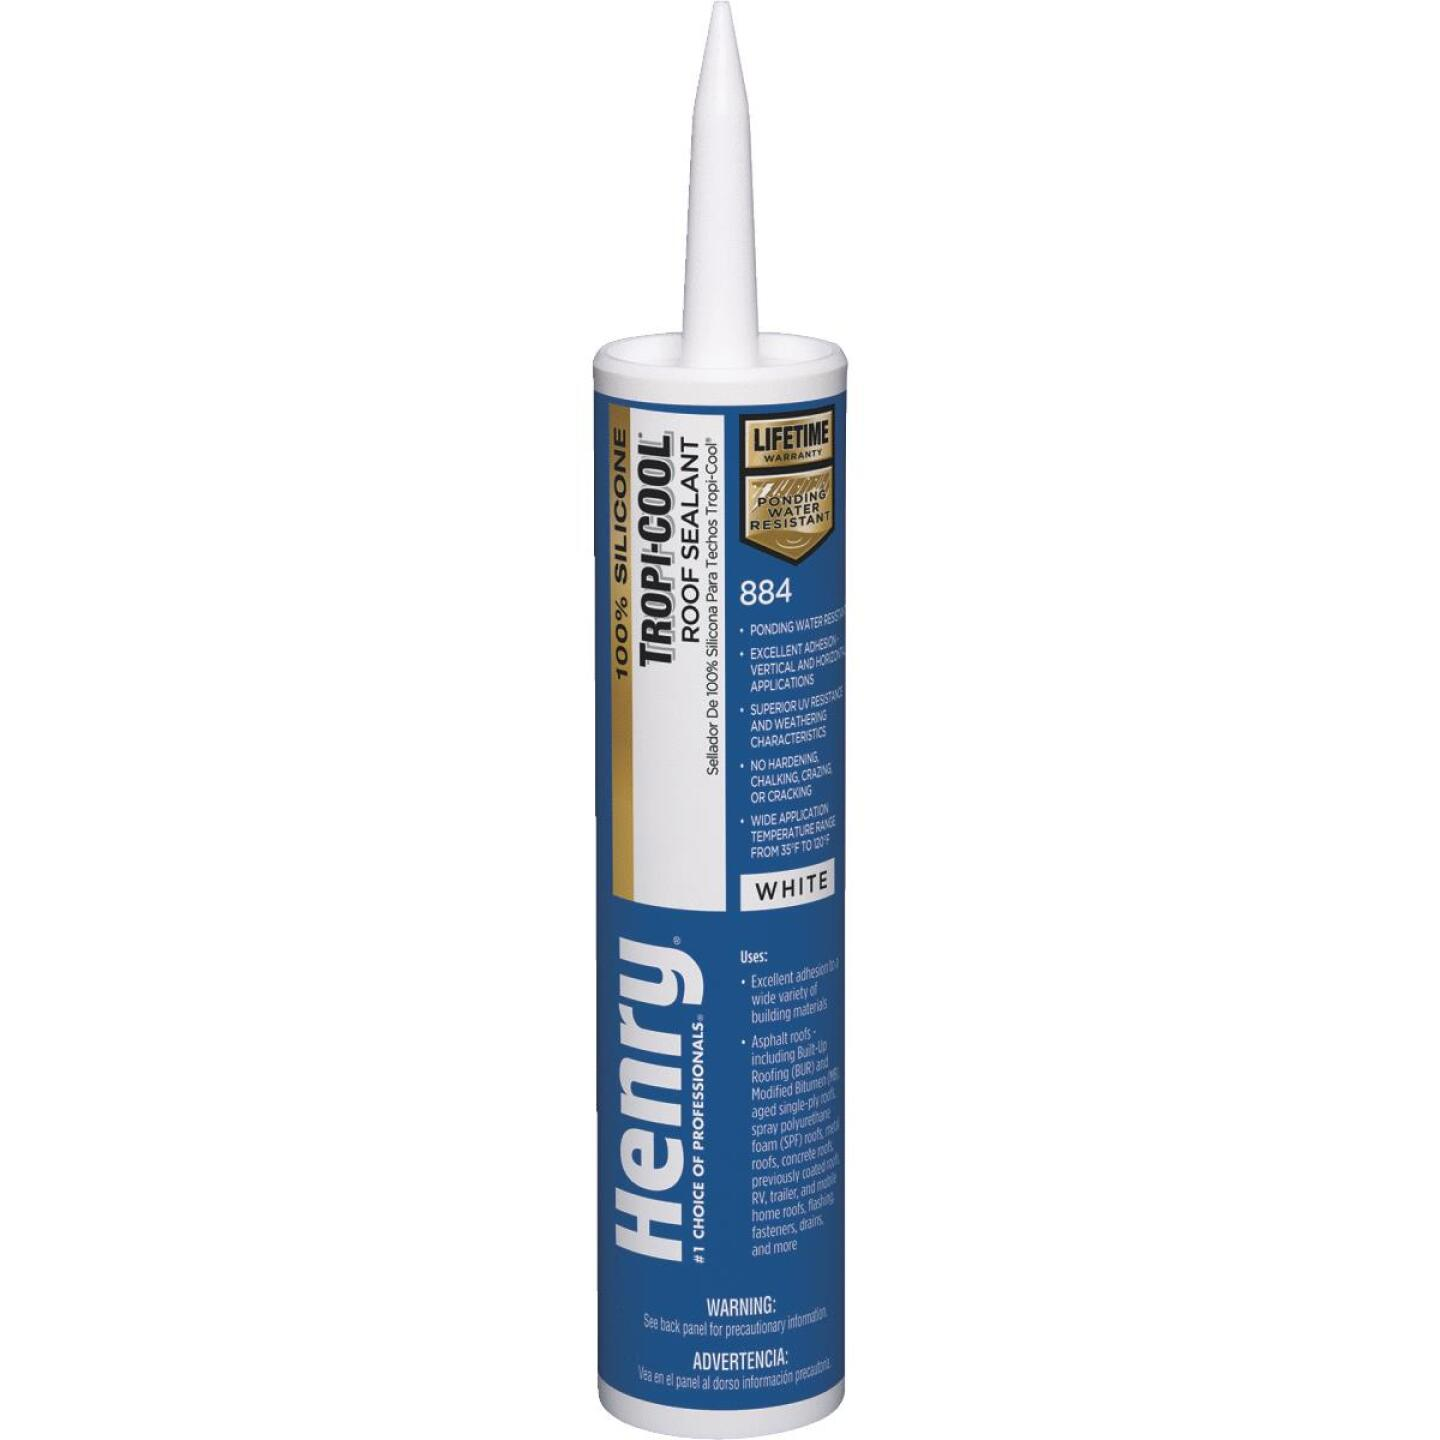 Henry Tropi Cool 10 1 Oz 884 Roof Sealant Do It Best World S Largest Hardware Store